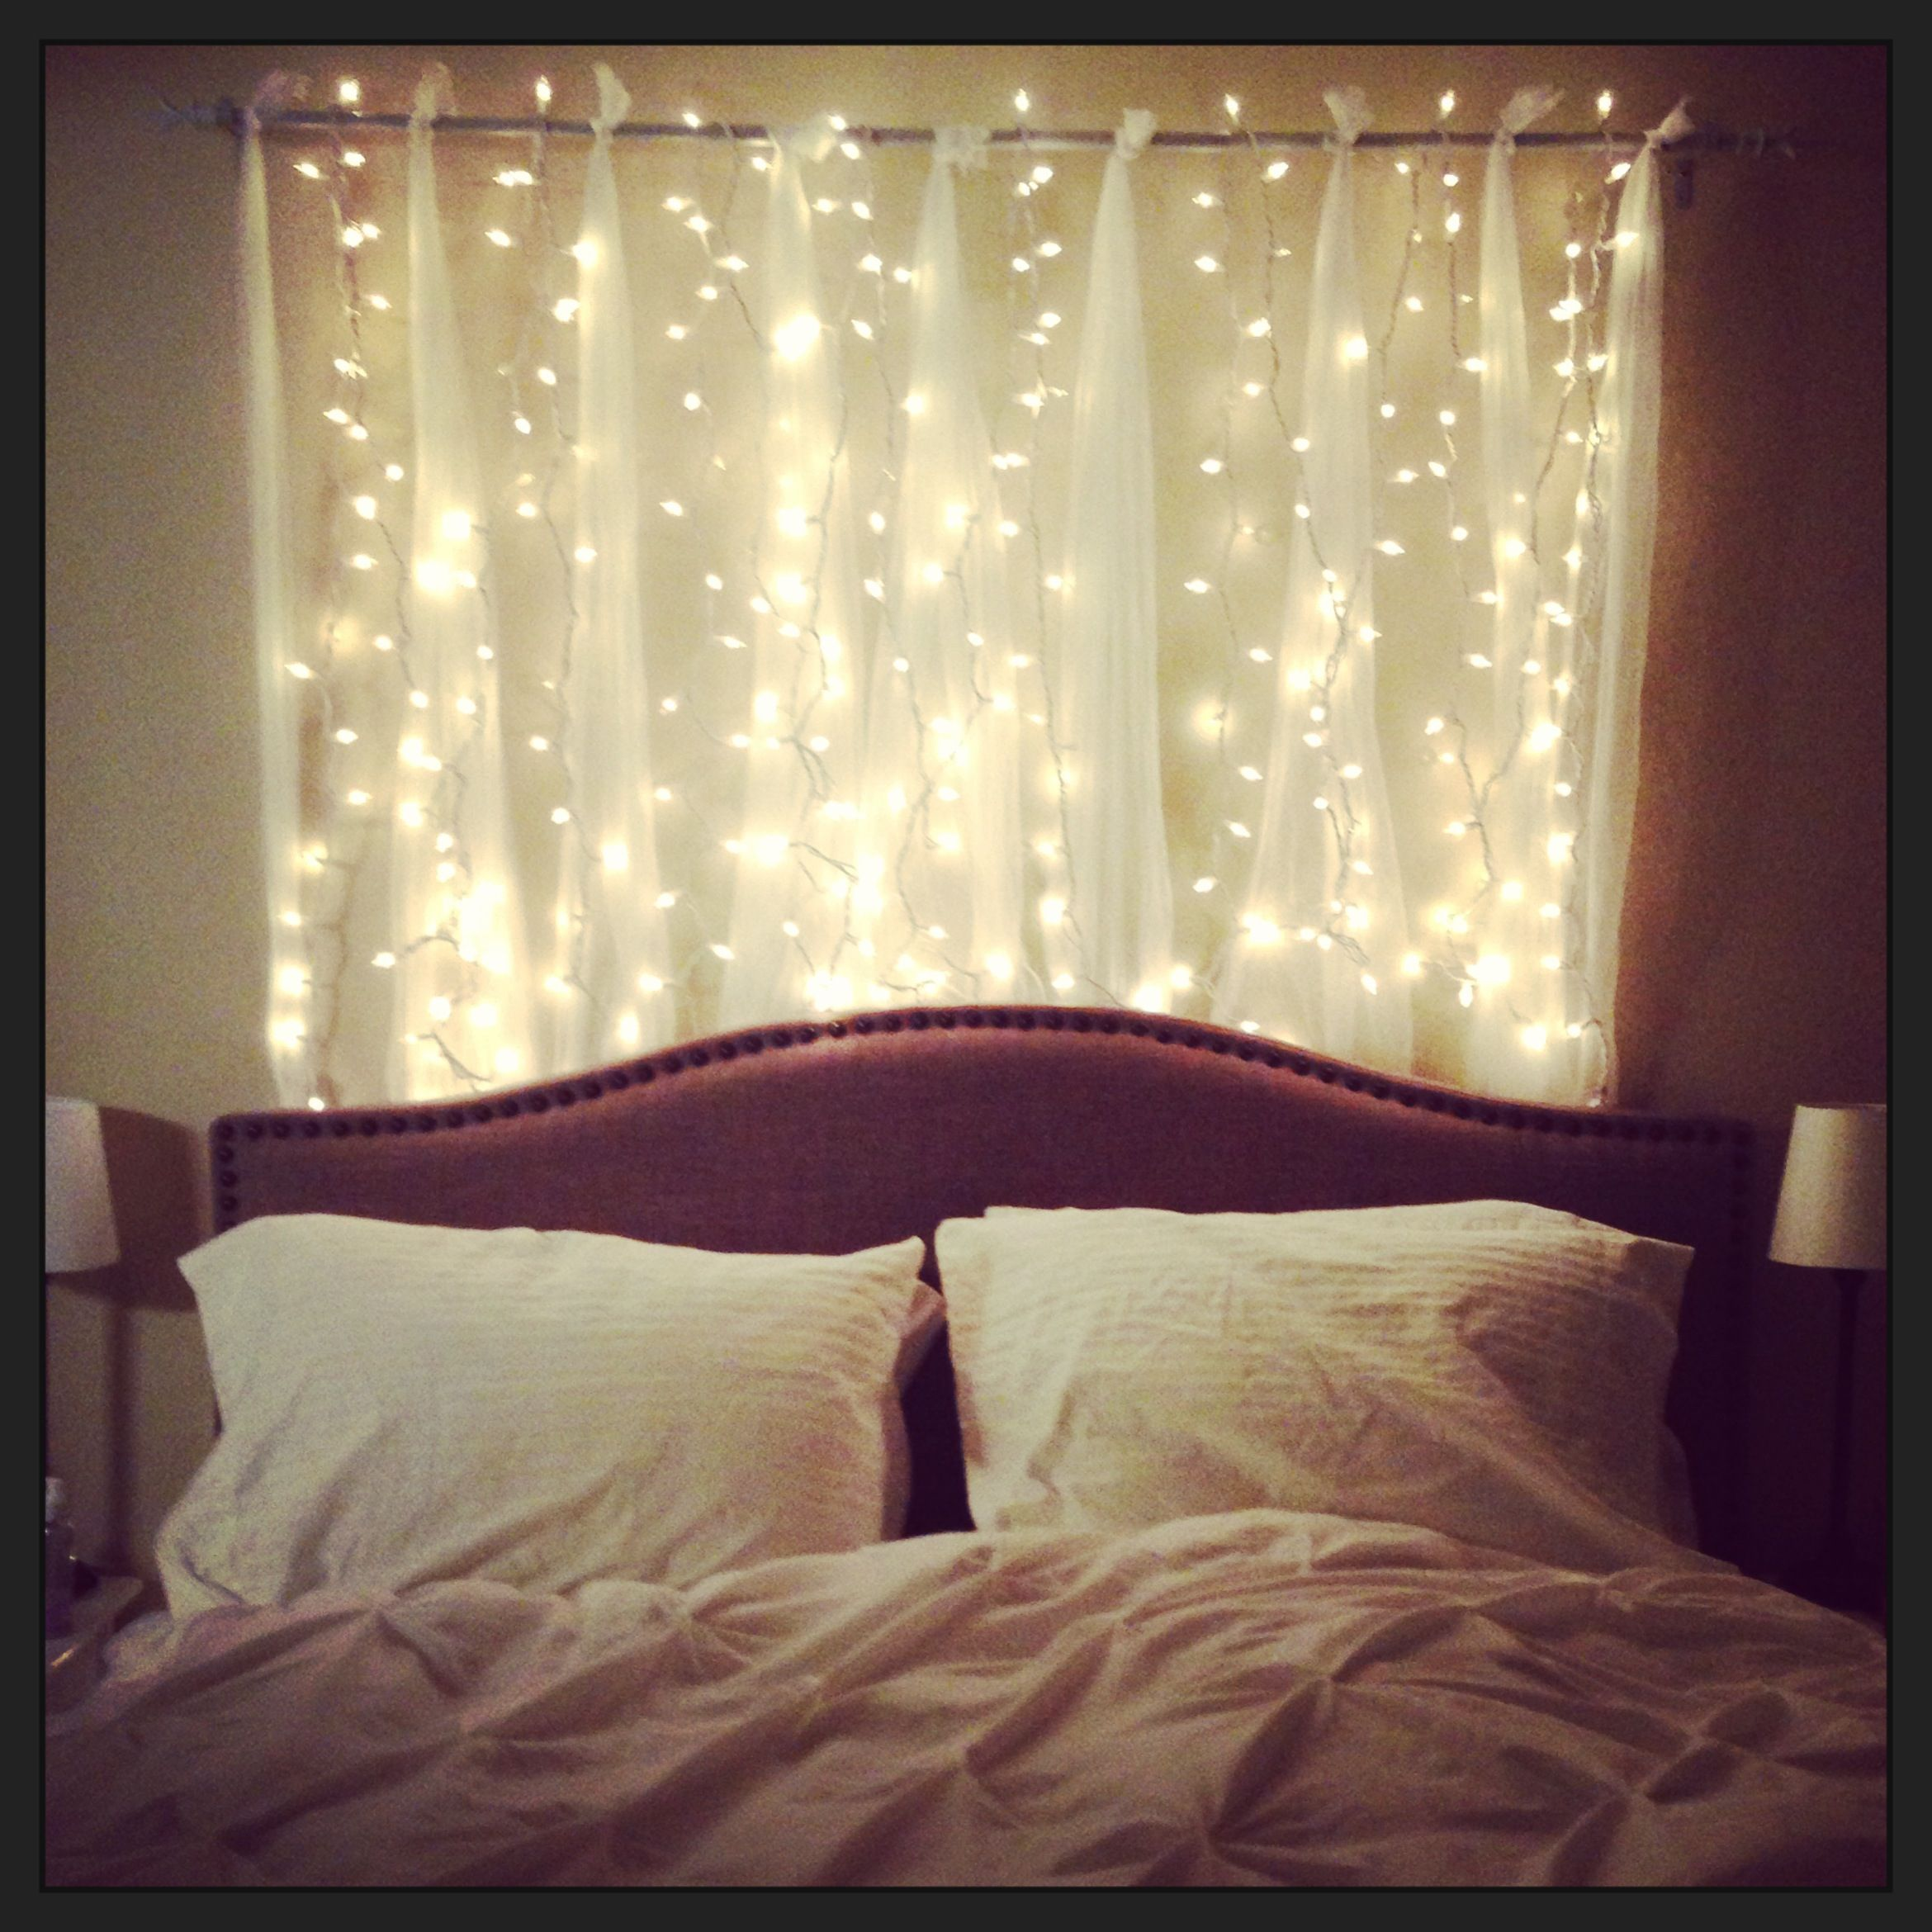 Ordinary Bedroom String Lights Ideas Part - 5: Headboard With Lovely Strings Of Lights Bedroom Decorations : A Lovely And  Beautiful Array Of Sparkling String Lights For Bedroom In Order To Pursue  The ...